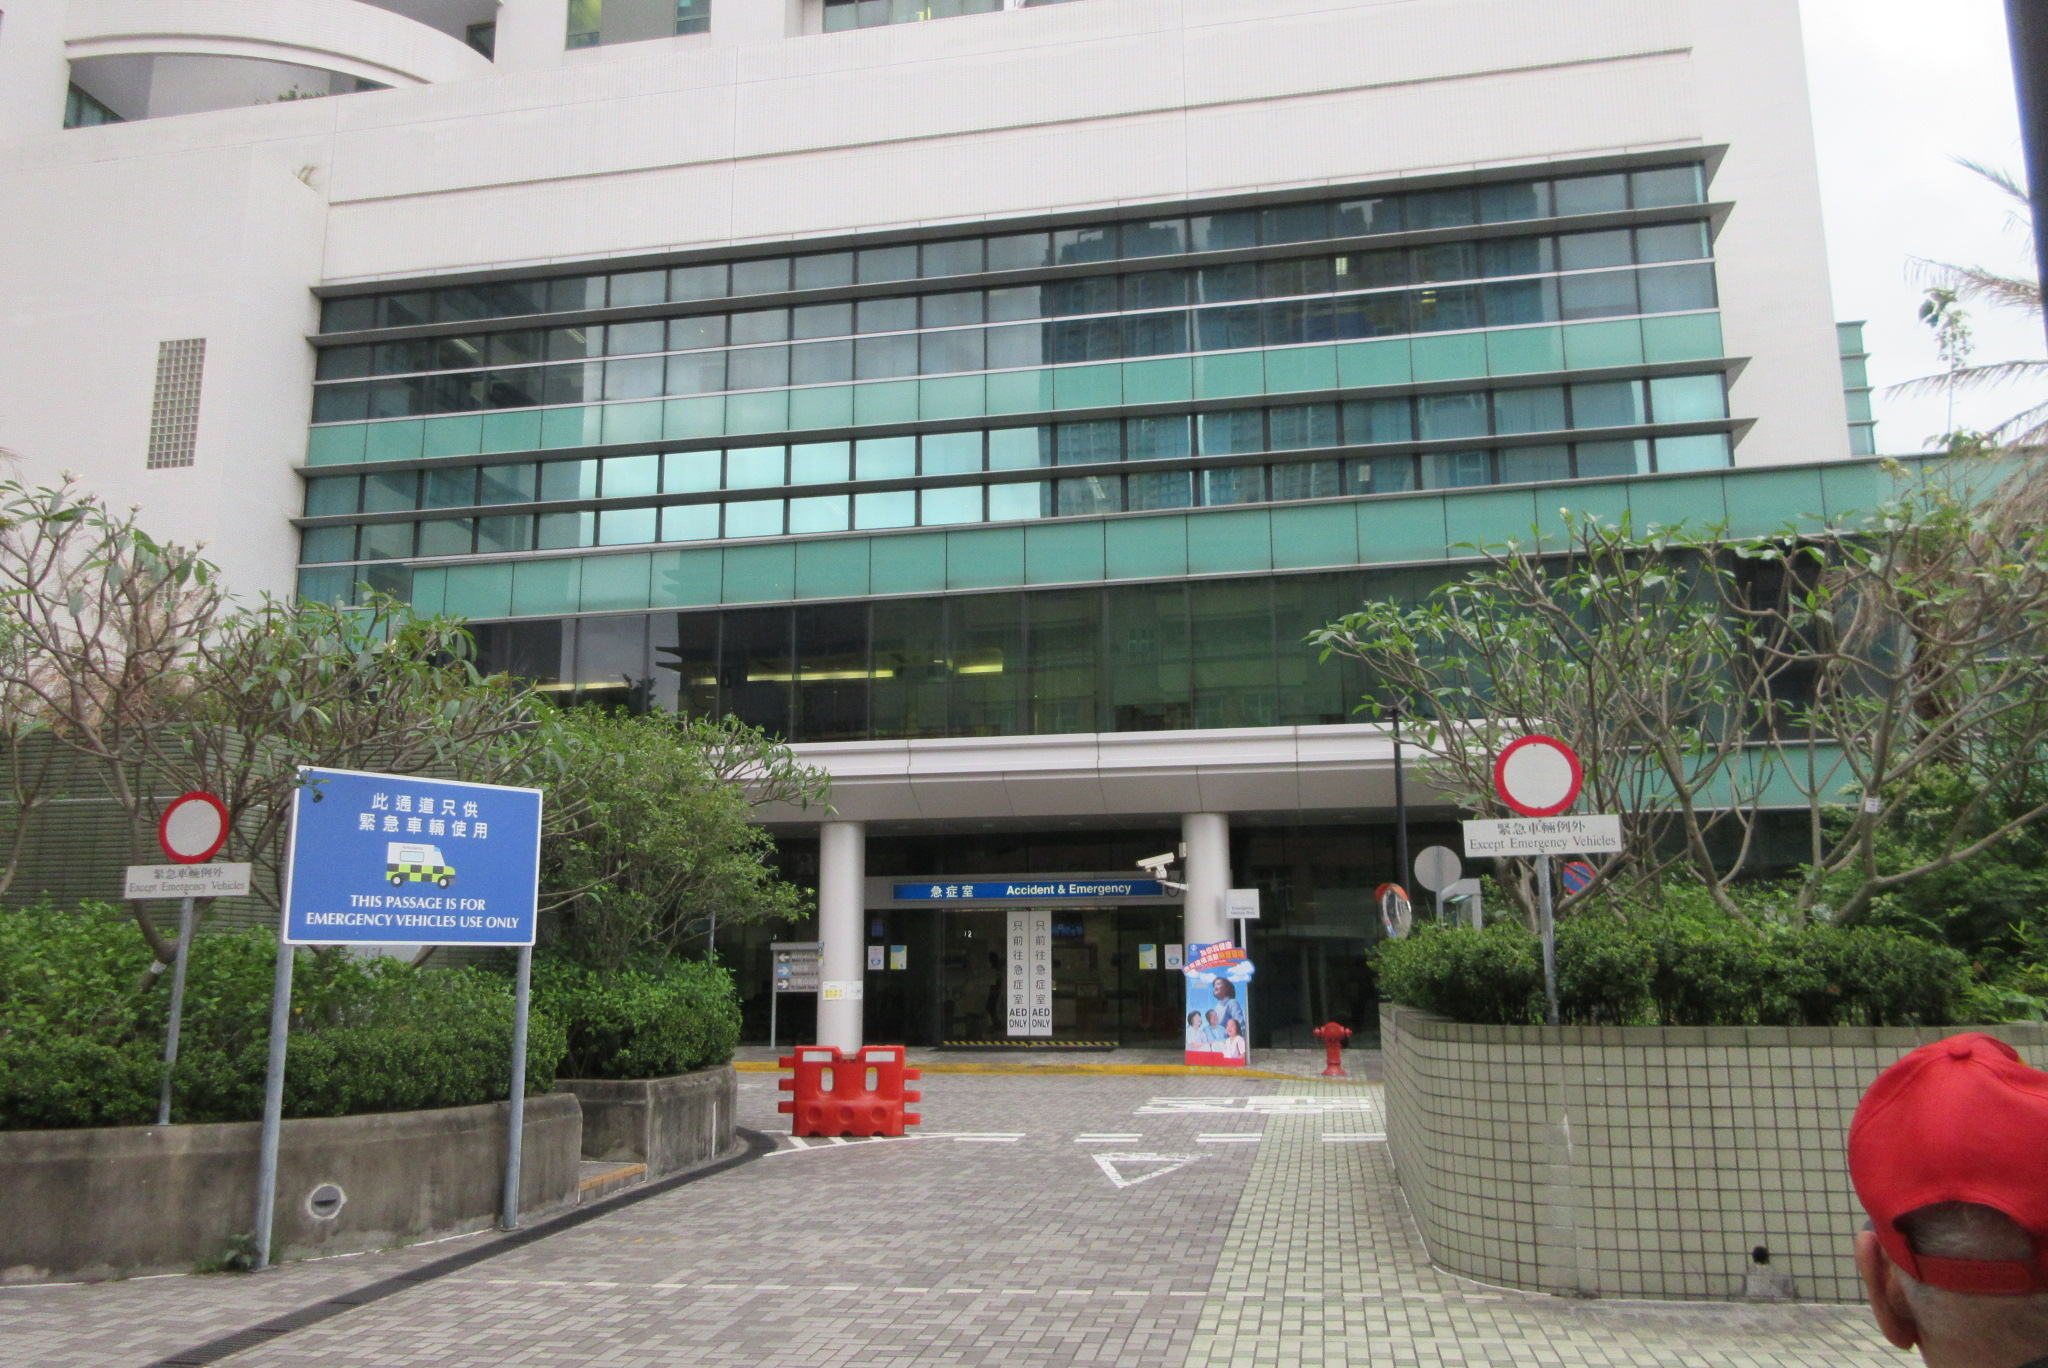 Filehk yuen long pok oi hospital emergency entrance filehk yuen long pok oi hospital emergency entrance april 2017 altavistaventures Choice Image